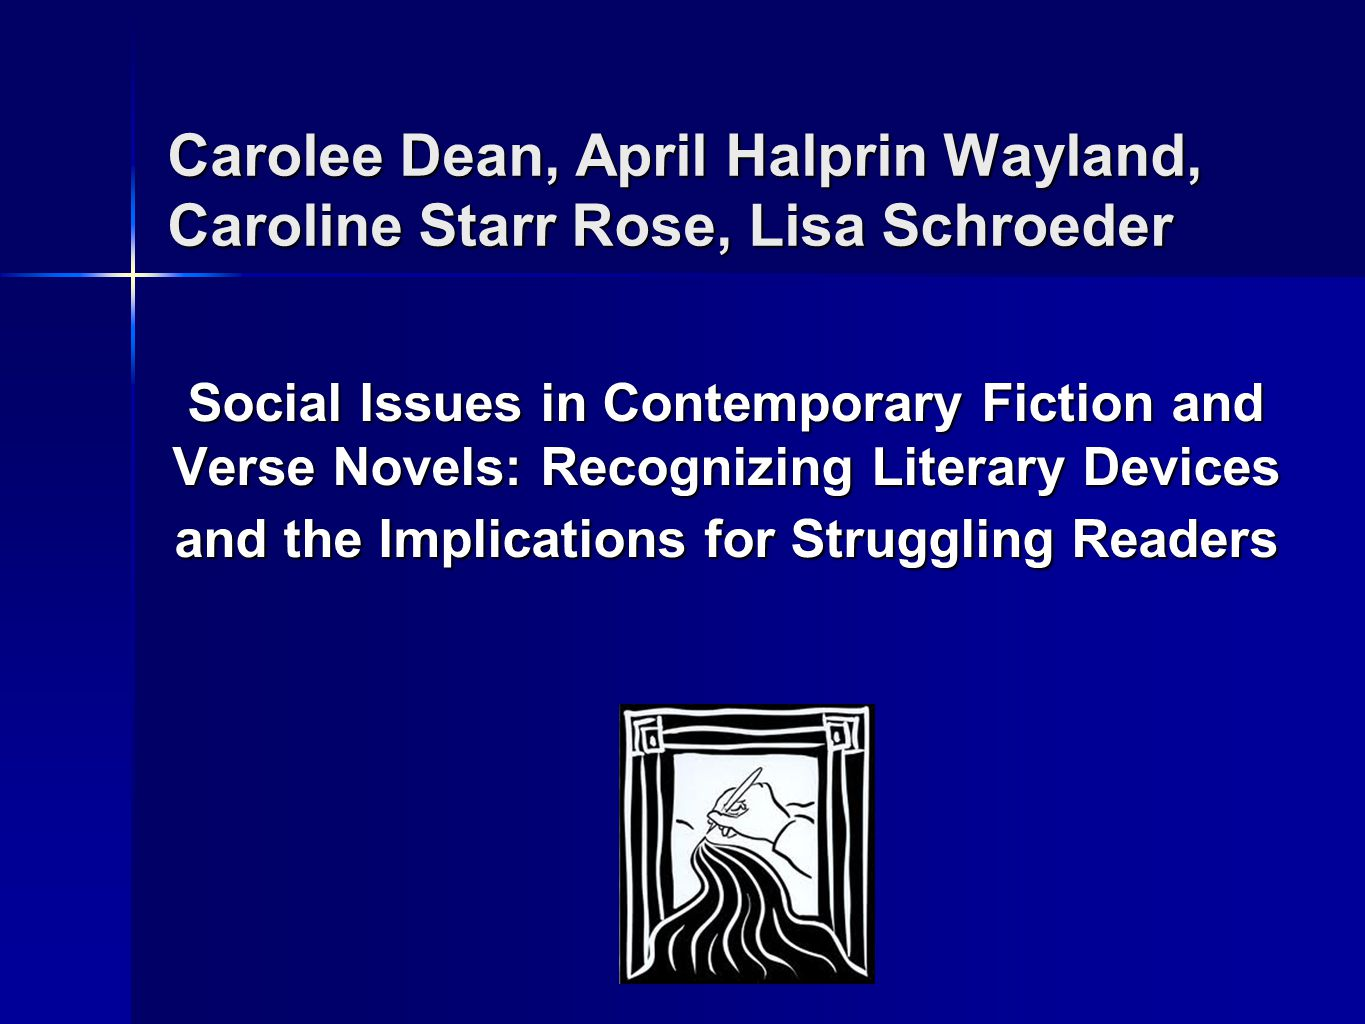 Carolee Dean, April Halprin Wayland, Caroline Starr Rose, Lisa Schroeder Social Issues in Contemporary Fiction and Verse Novels: Recognizing Literary